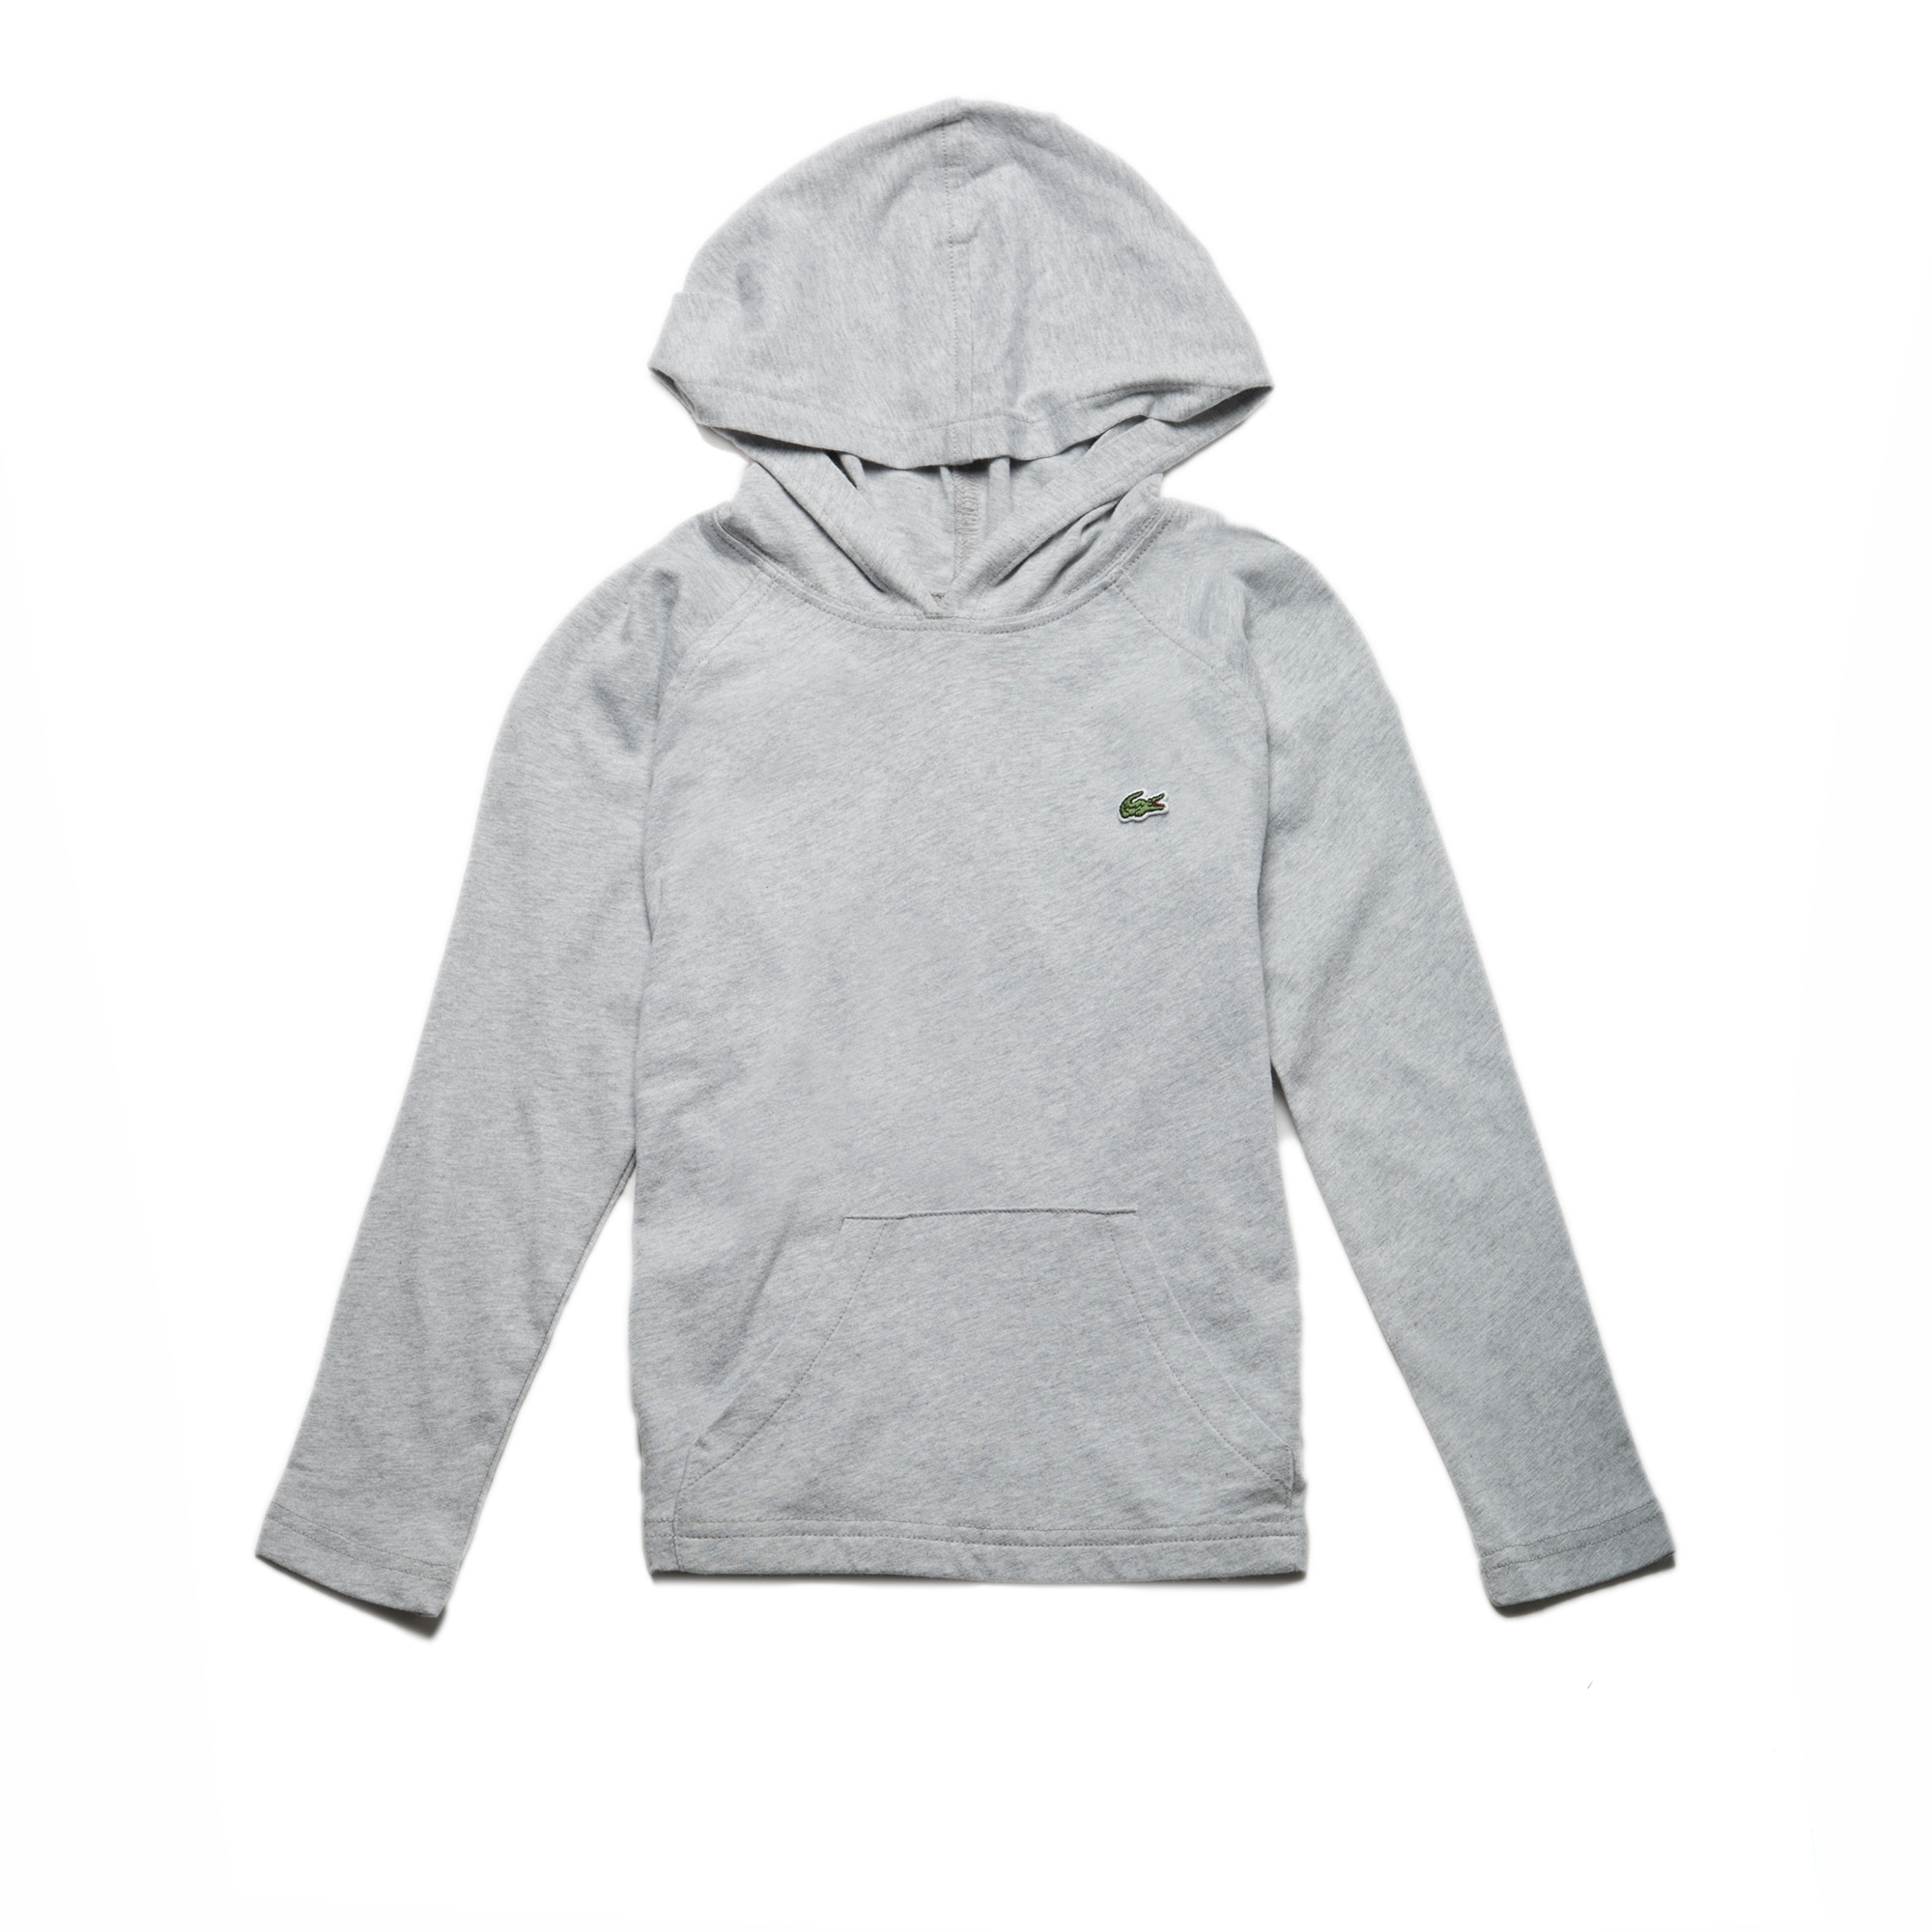 Boys' Hooded Jersey Sweatshirt